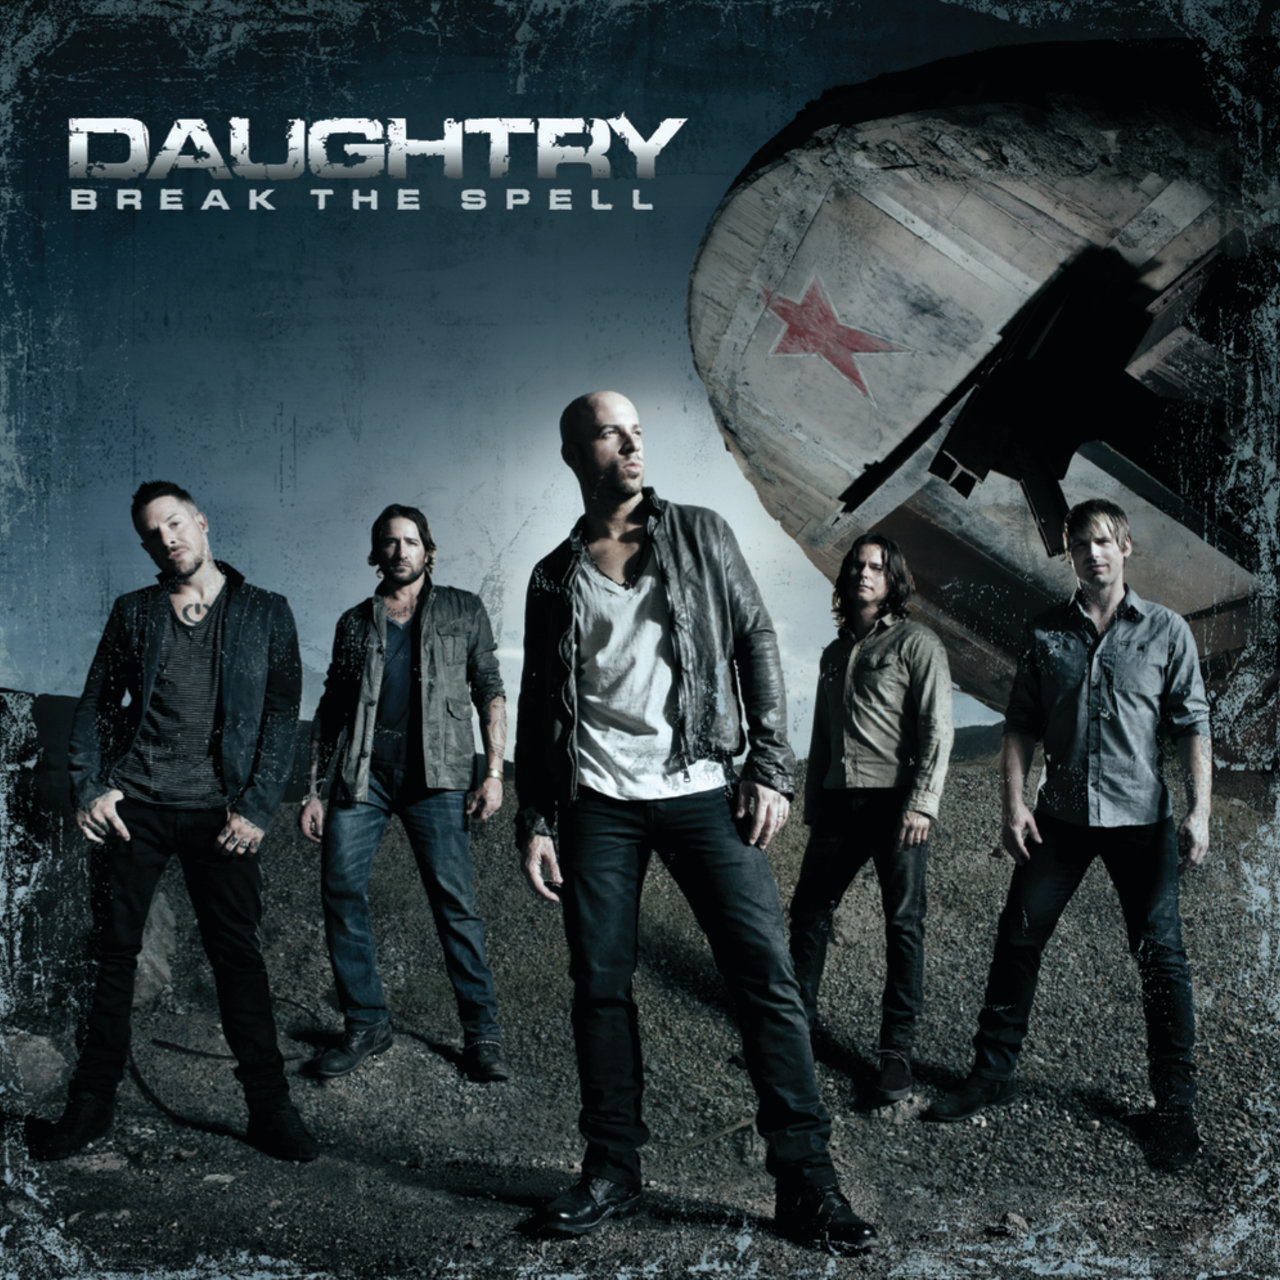 tidal listen to daughtry  deluxe edition  on tidal home daughtry mp3 home daughtry mp3